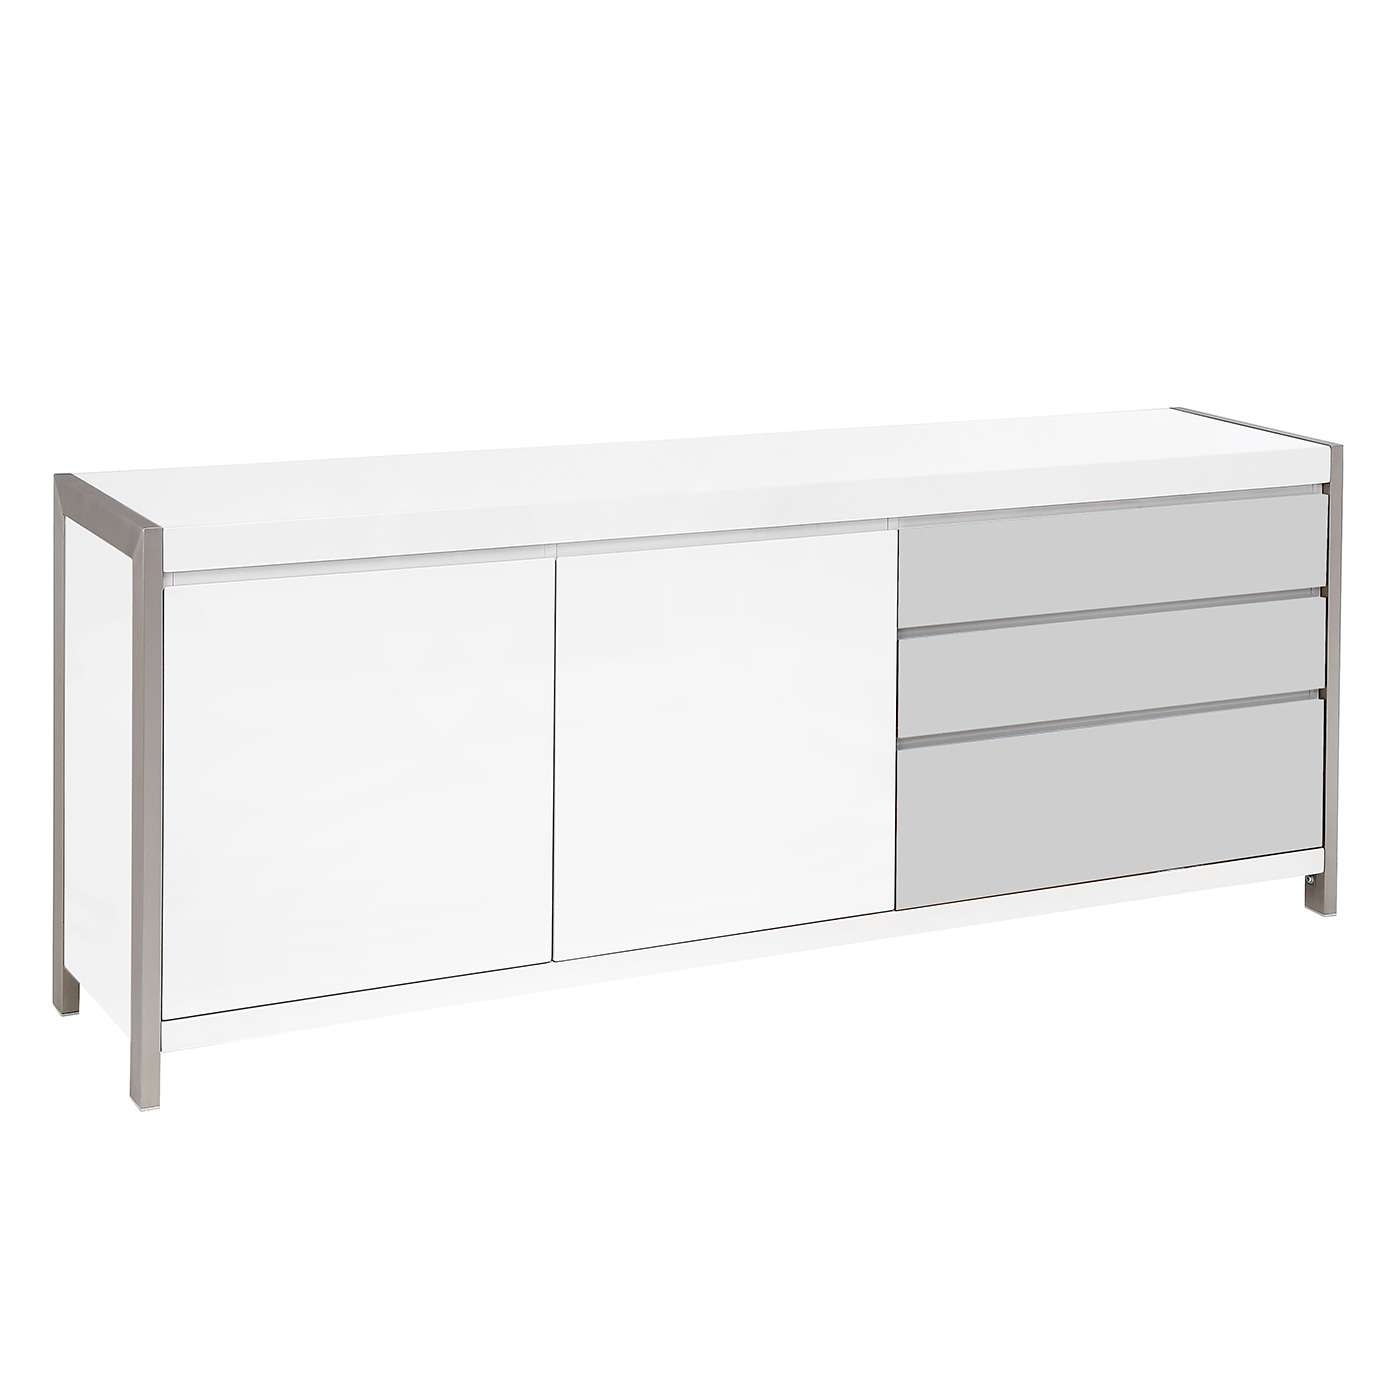 Dolcedo White High Gloss Sideboard | Redtree Furniture – Keadue Pertaining To High Gloss Grey Sideboards (View 4 of 20)